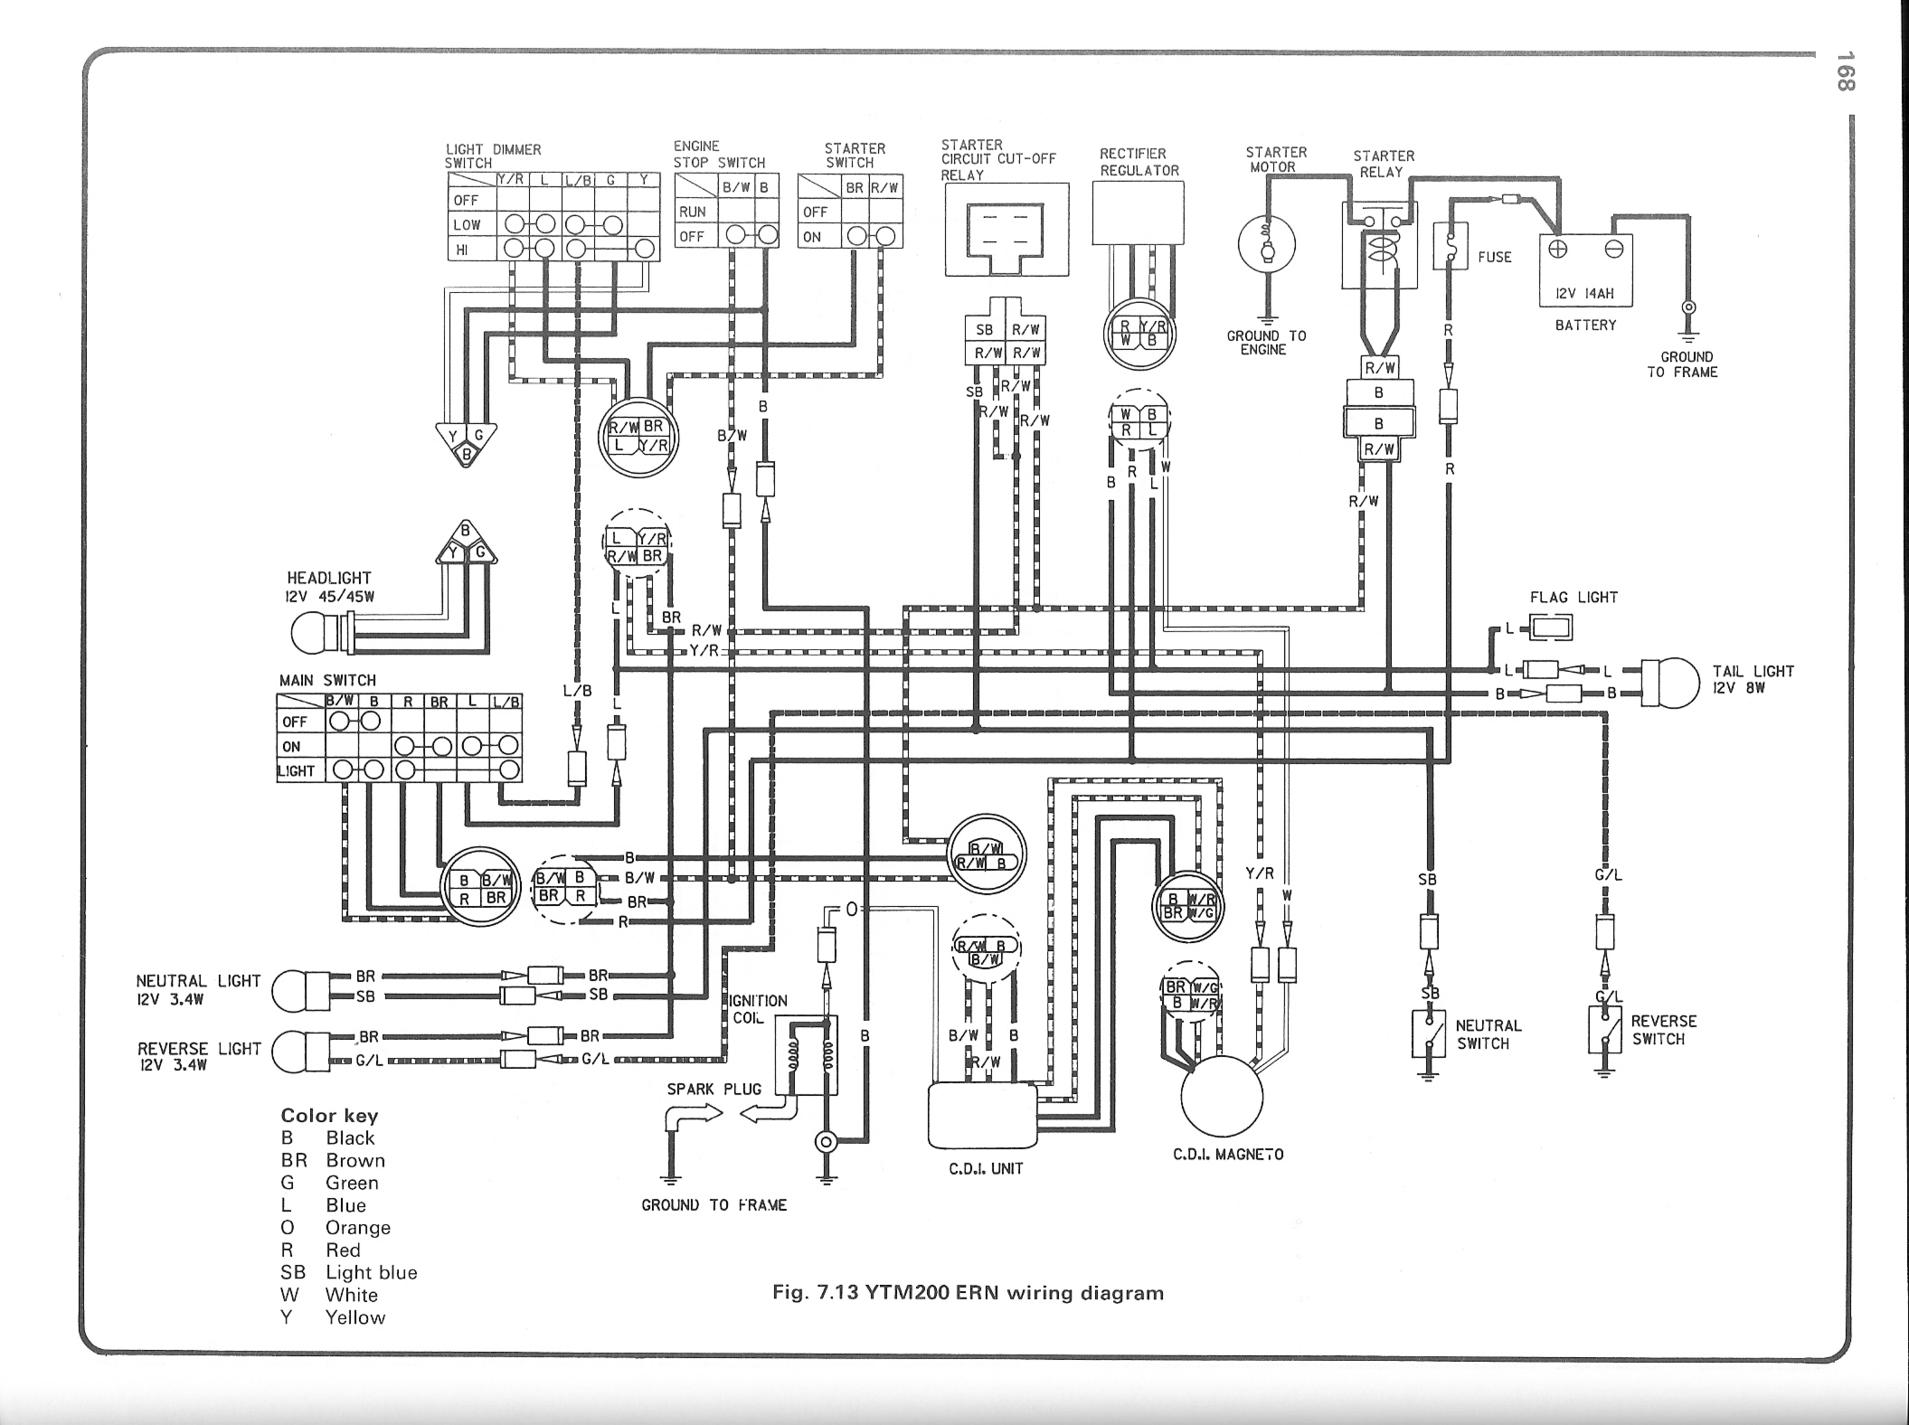 kawasaki bayou 220 ignition wiring diagram free download kawasaki bayou 400 cdi wiring 3wheeler world - yamaha ytm200ern three-wheeler wiring diagram #14